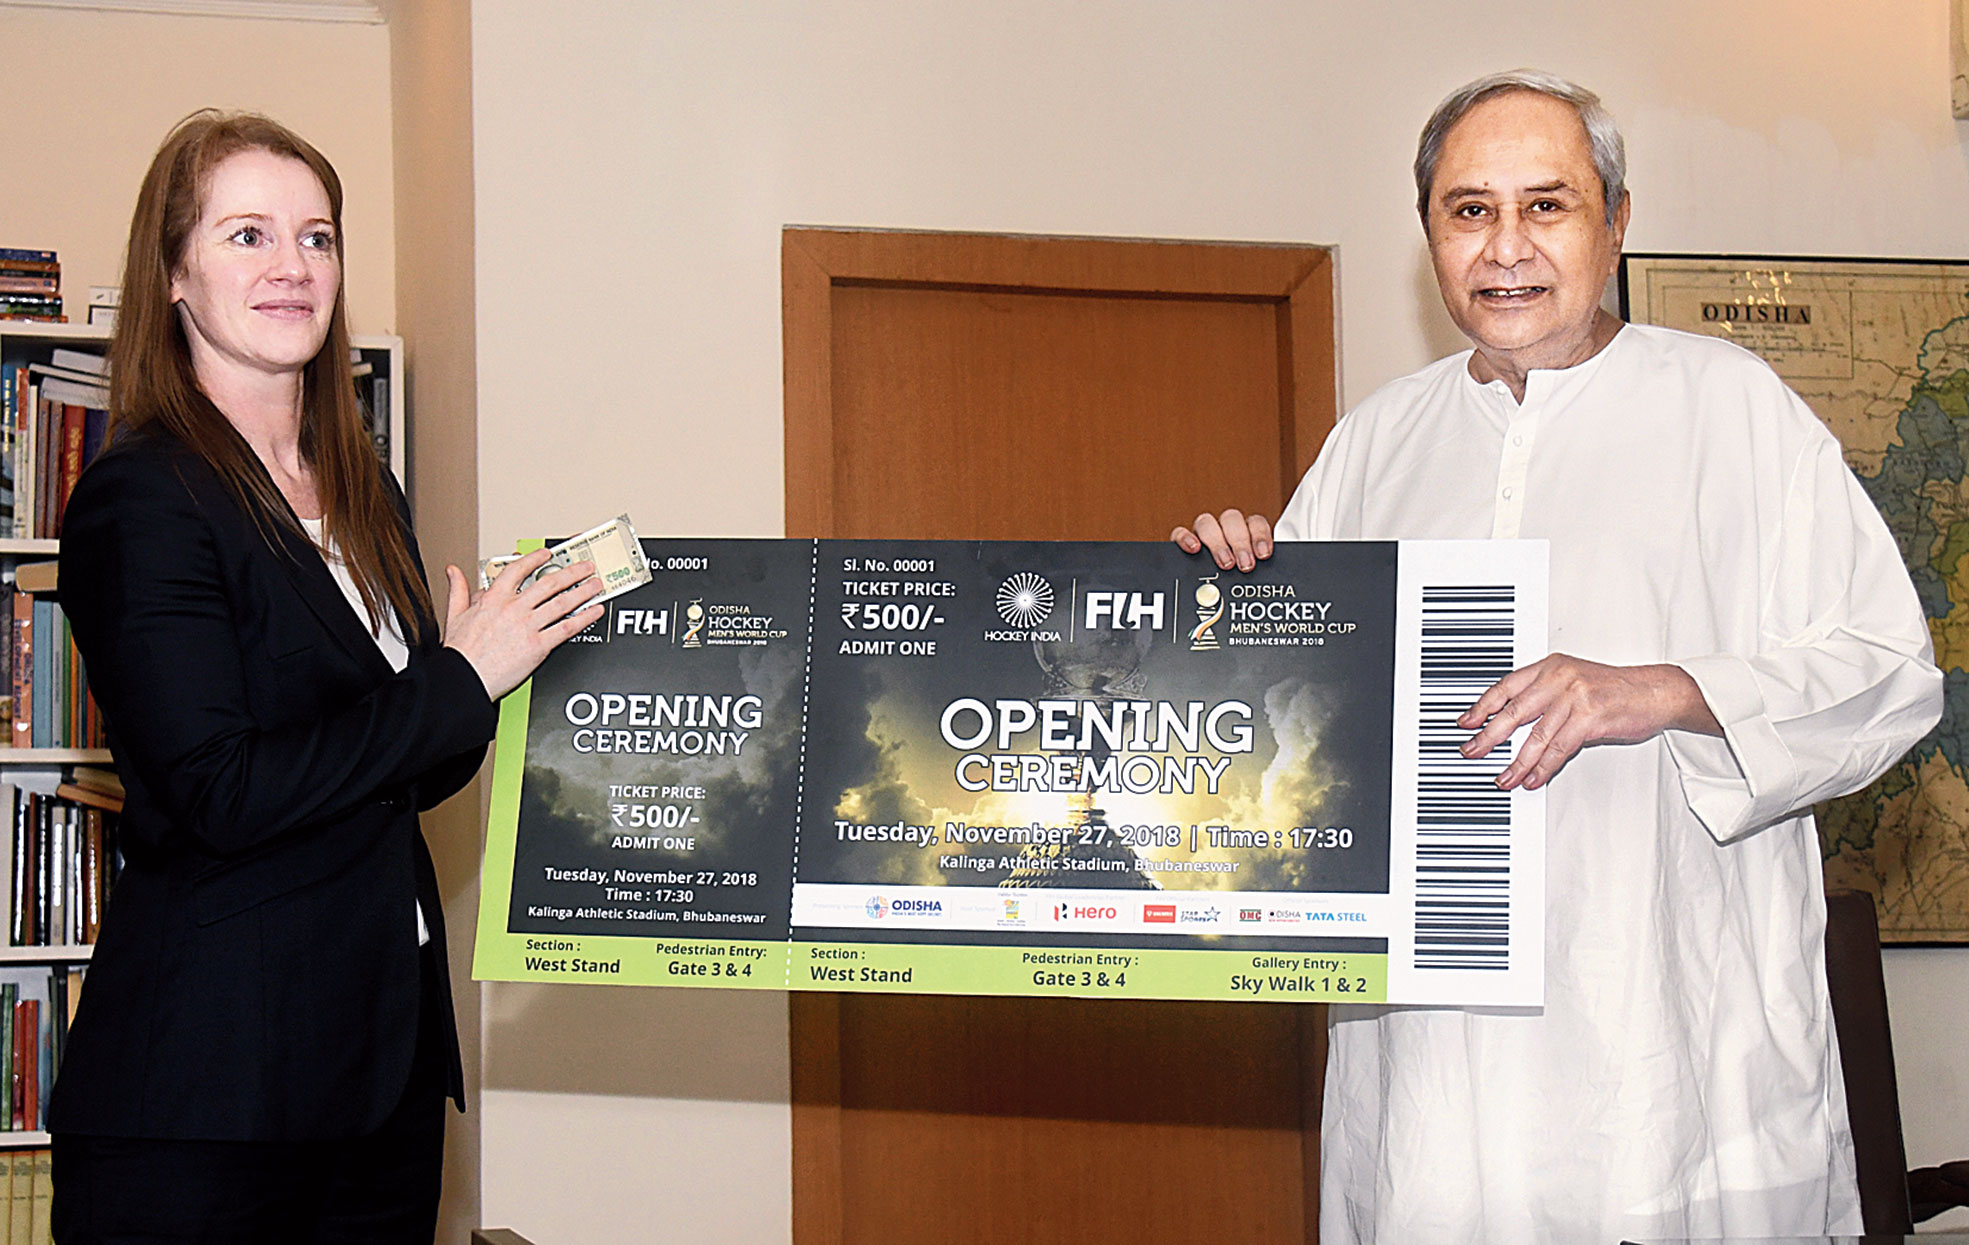 Hockey India CEO Elena Norman presents the first ticket of the Men's Hockey World Cup to chief minister Naveen Patnaik in Bhubaneswar on Monday.